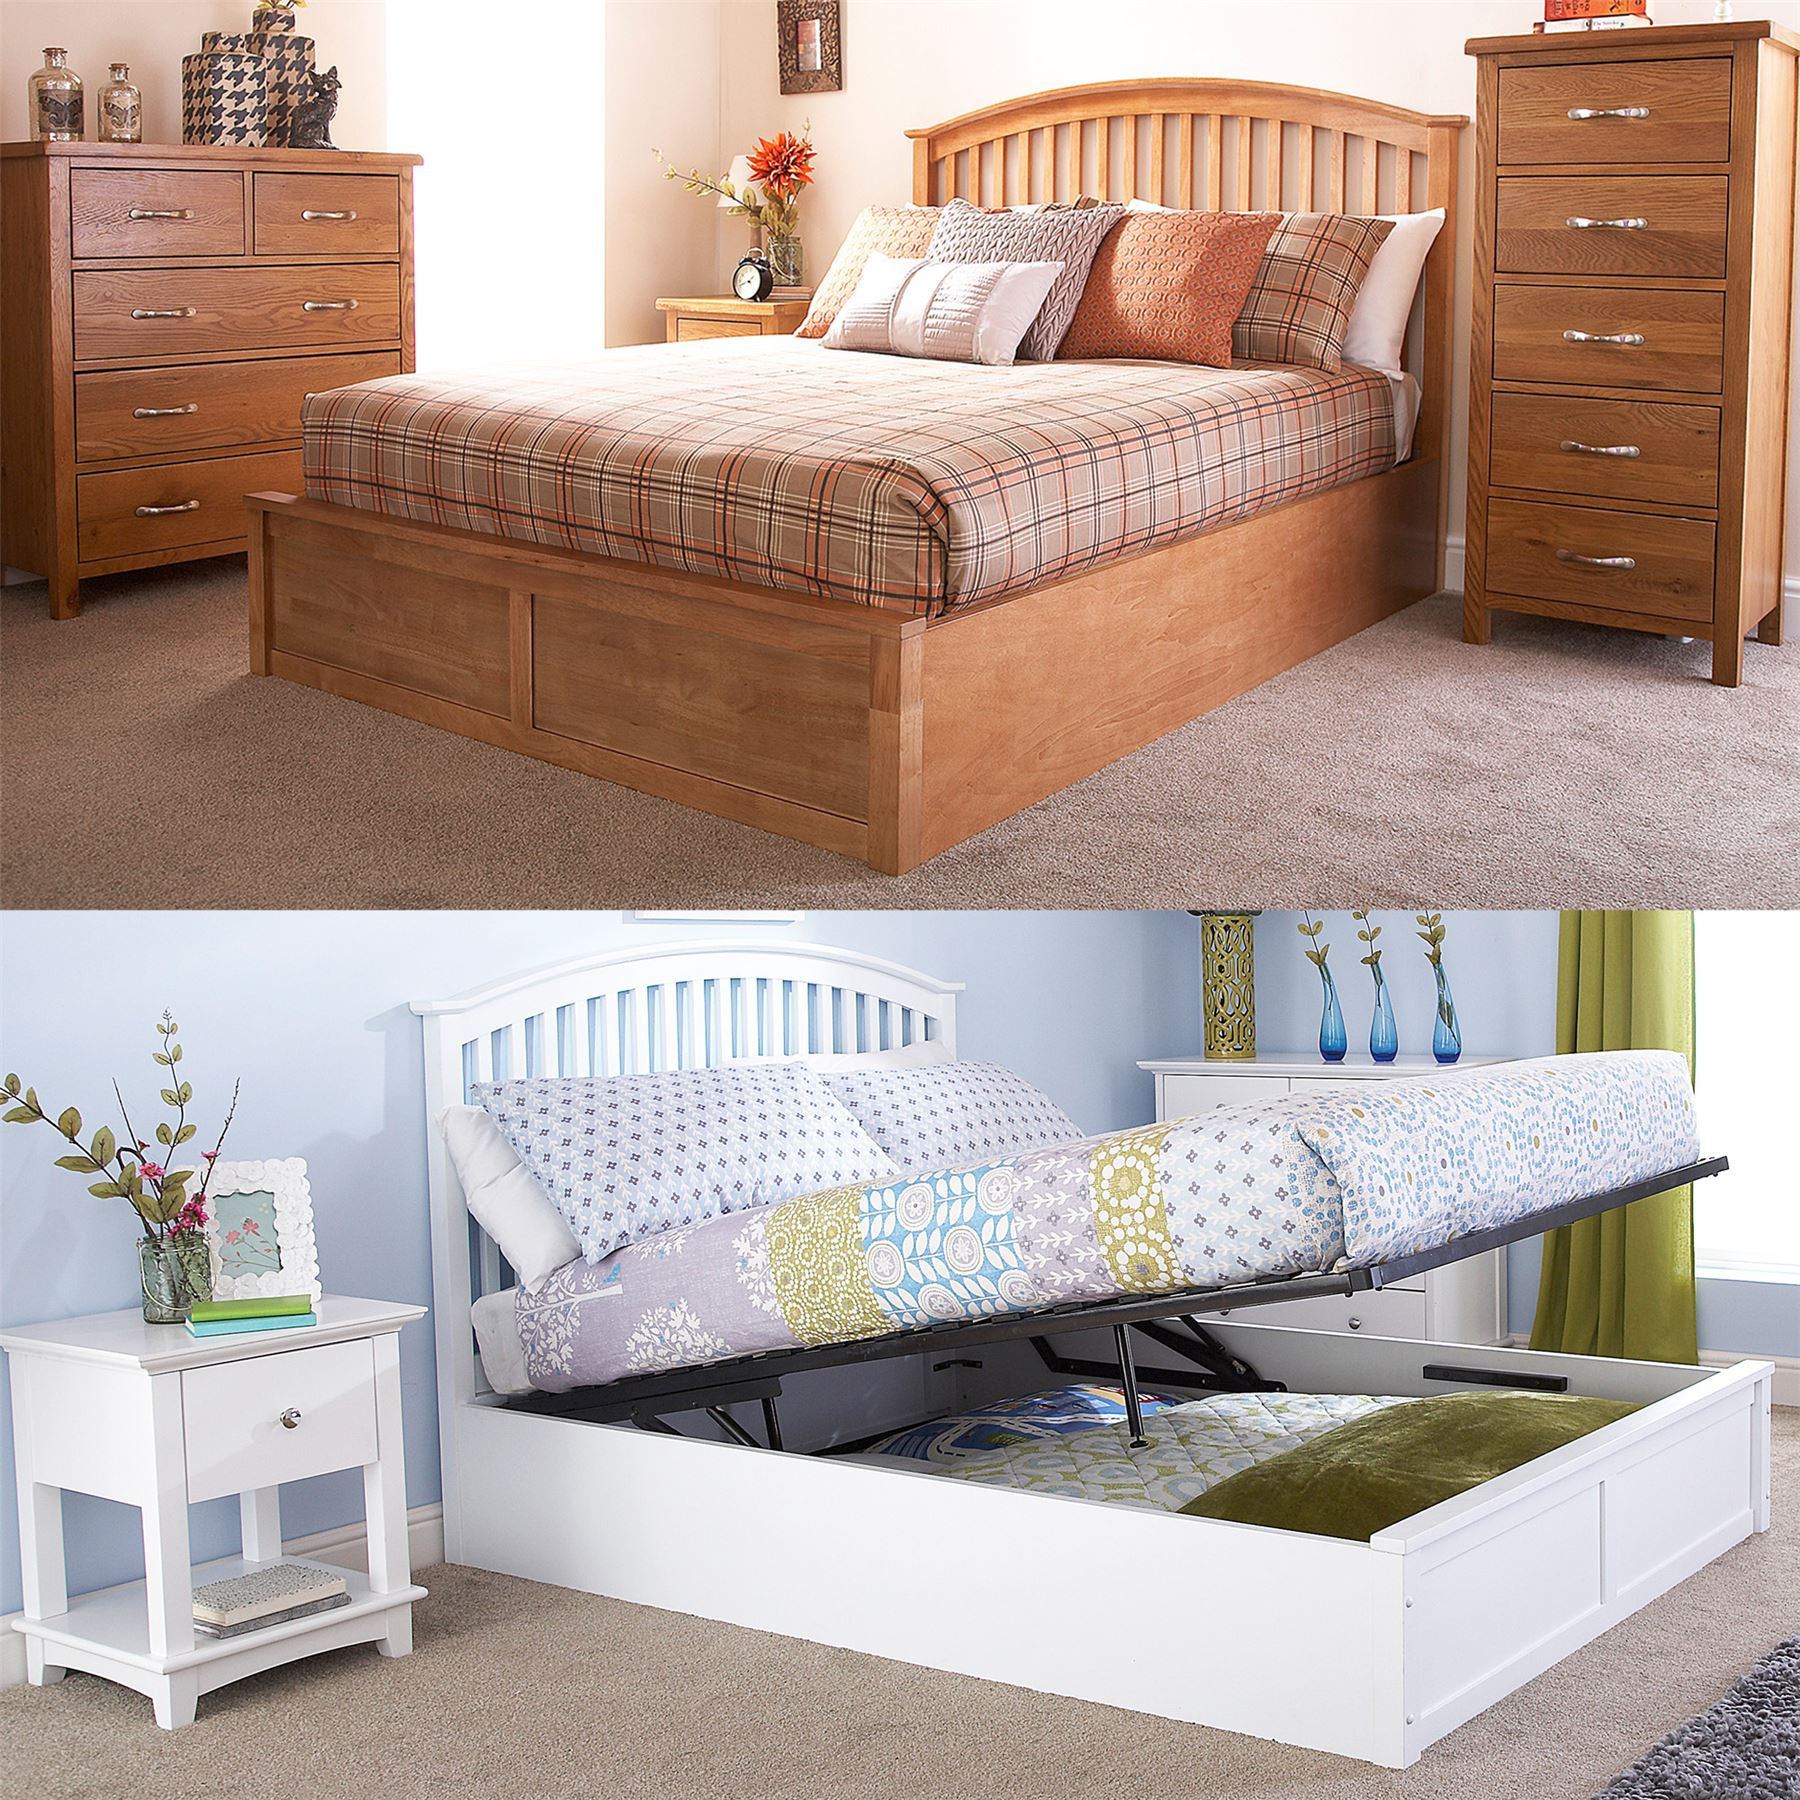 Miraculous Details About Madrid Wooden Ottoman Storage Bed Gas Lift Up 4Ft6 Double 5Ft King Oak White Forskolin Free Trial Chair Design Images Forskolin Free Trialorg